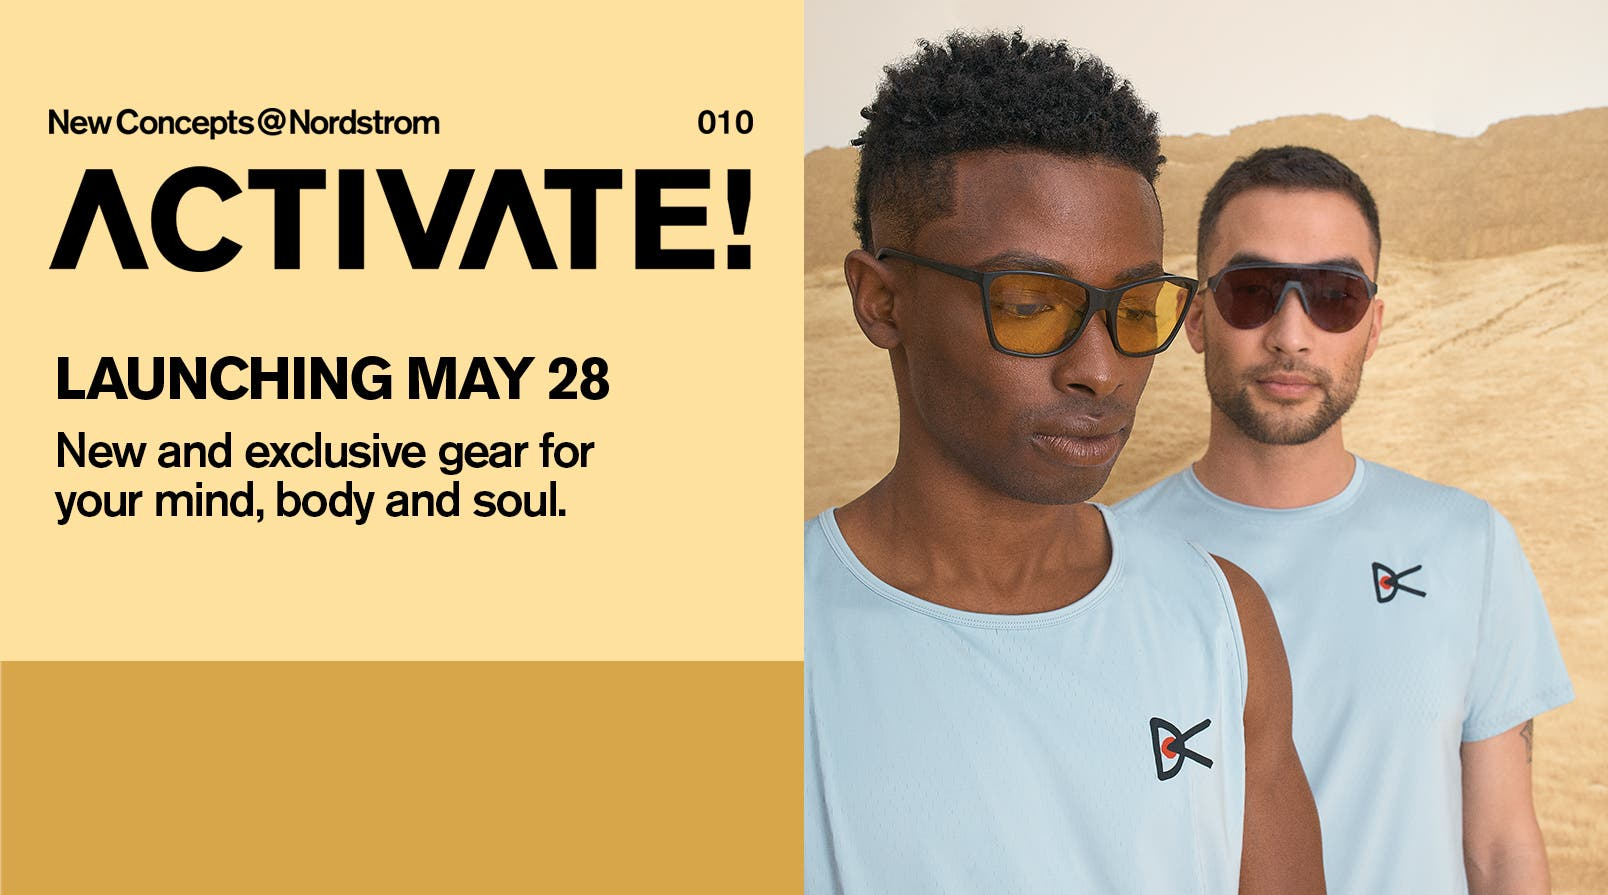 Coming soon—New Concepts at Nordstrom: Activate!